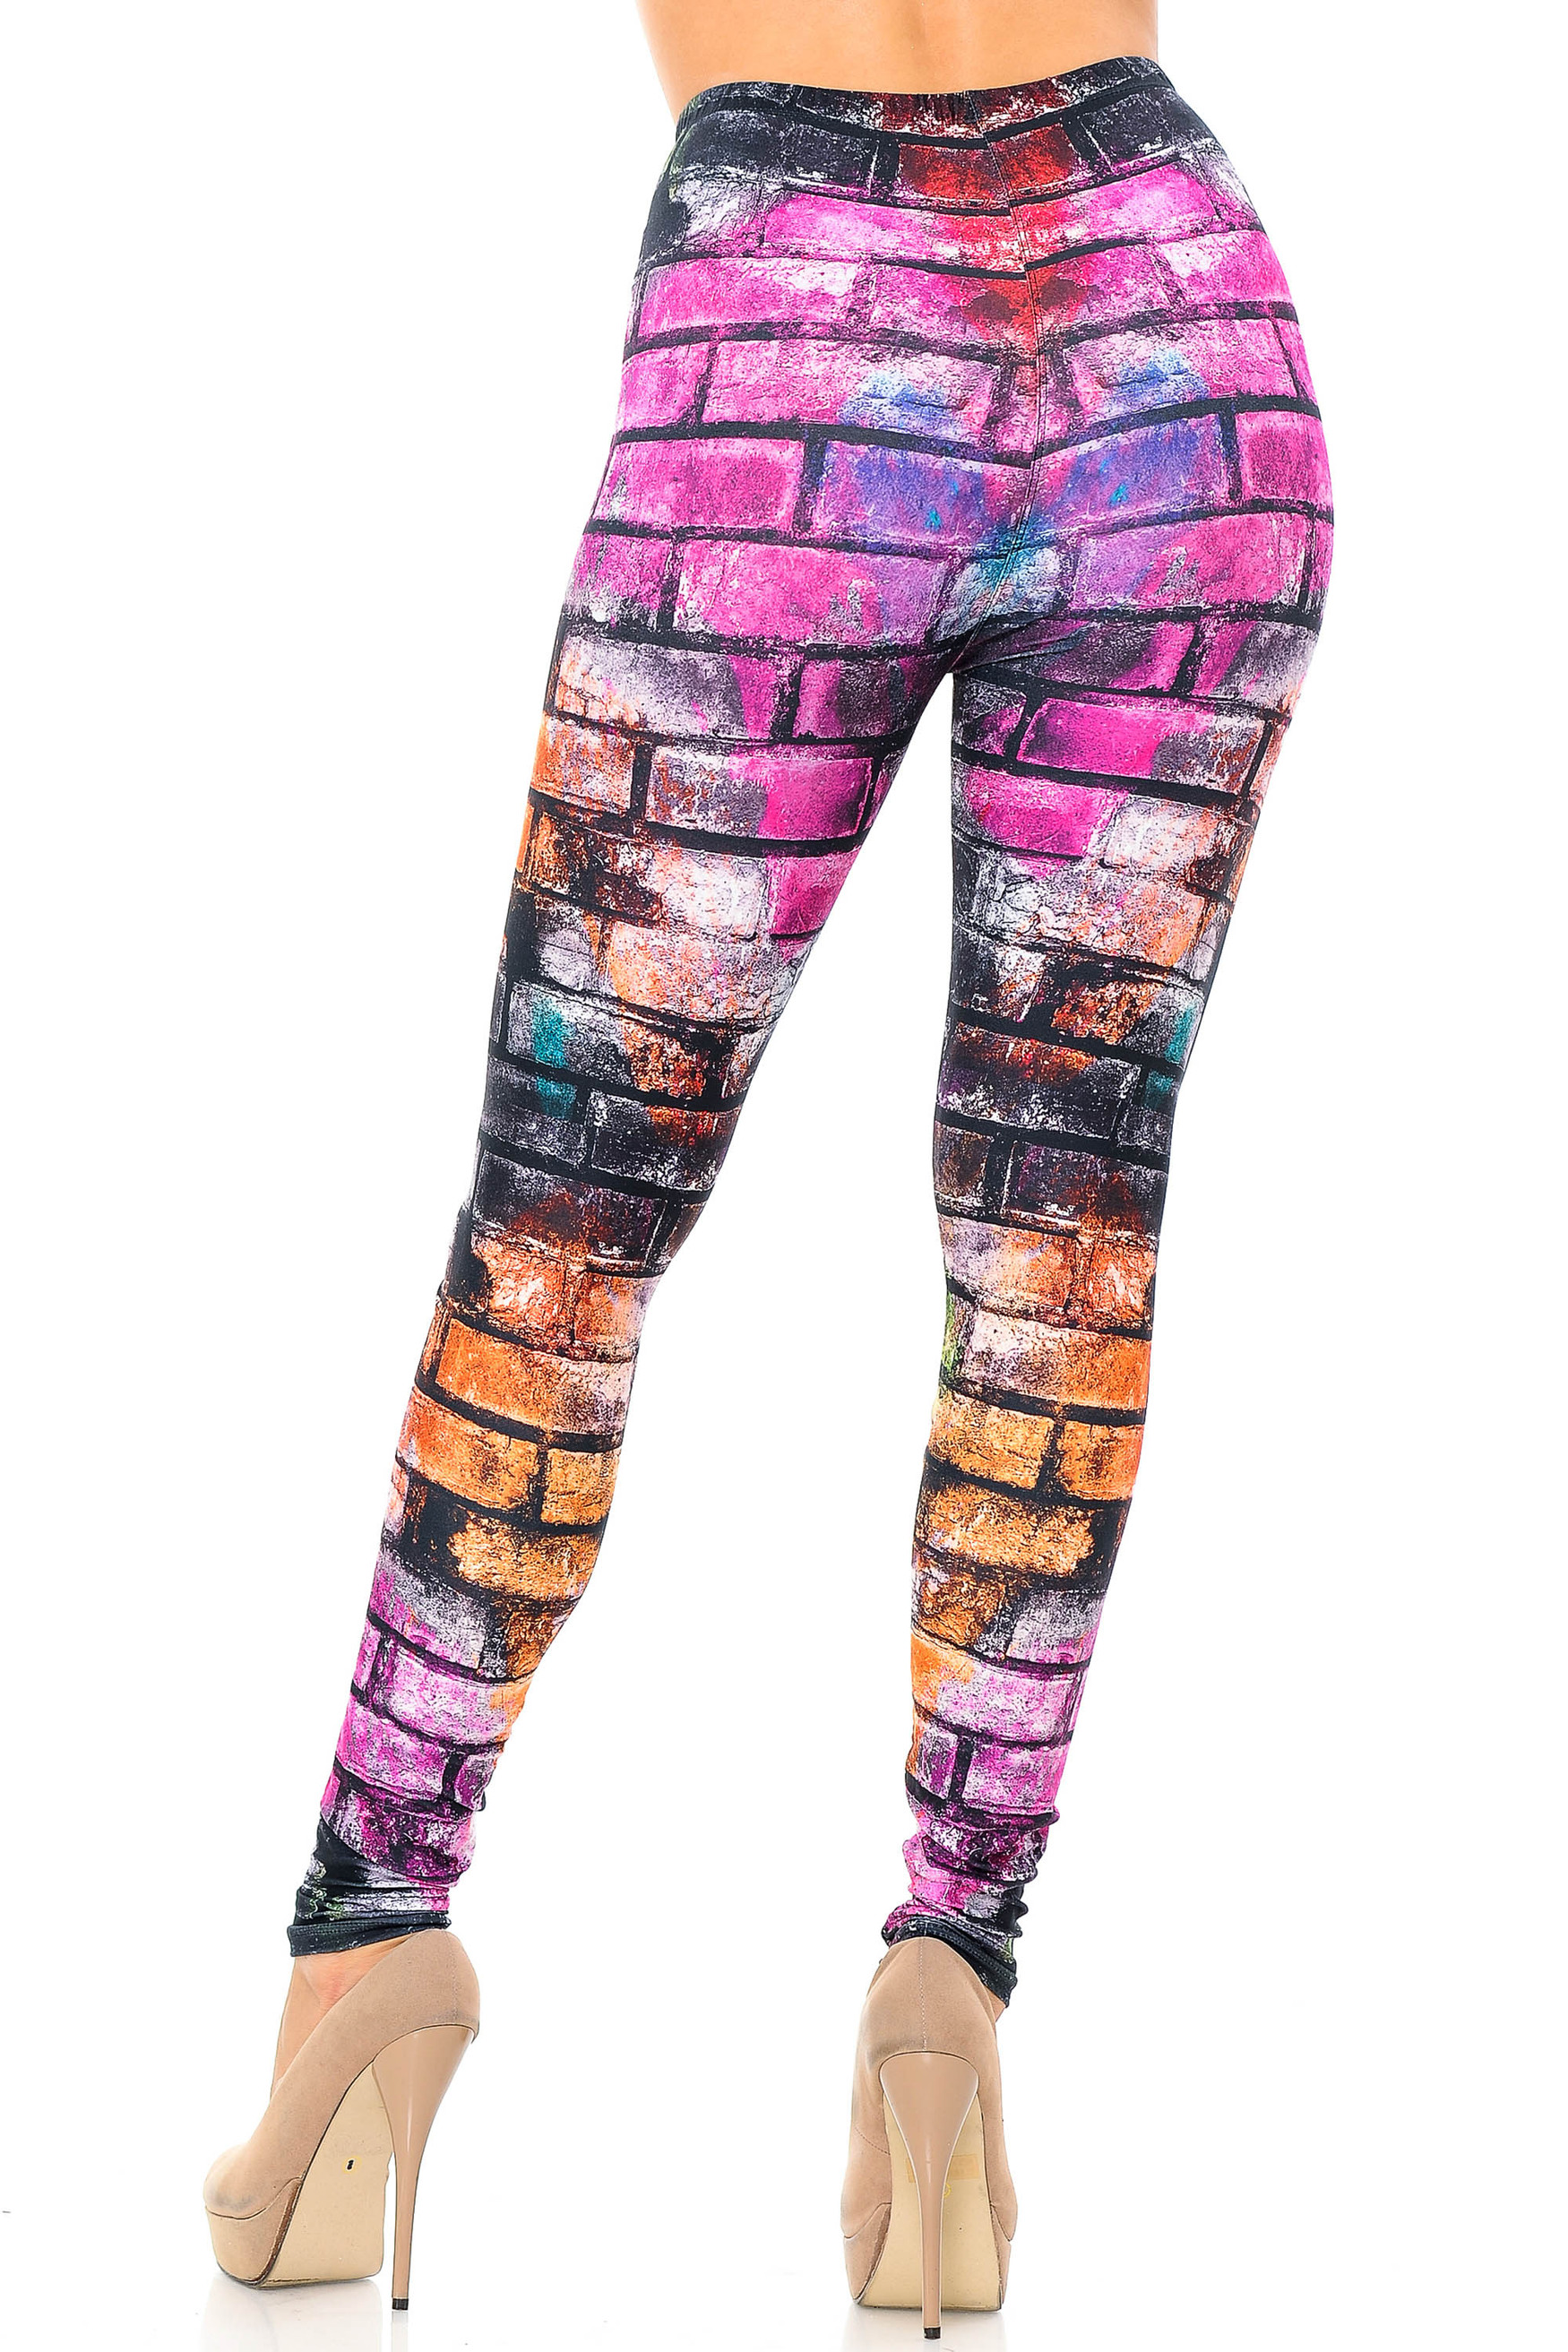 Creamy Soft Rainbow Brick Extra Plus Size Leggings - 3X-5X - USA Fashion™